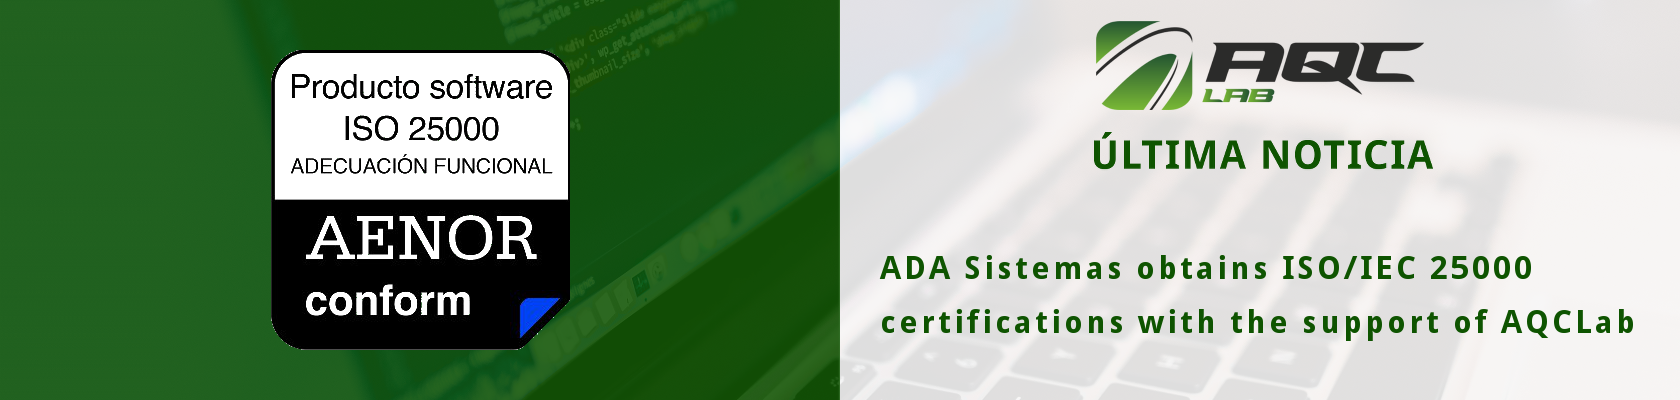 [NOVEMBER 2016] Ada Sistemas obtains ISO/IEC 25000 certification with the support of AQCLab